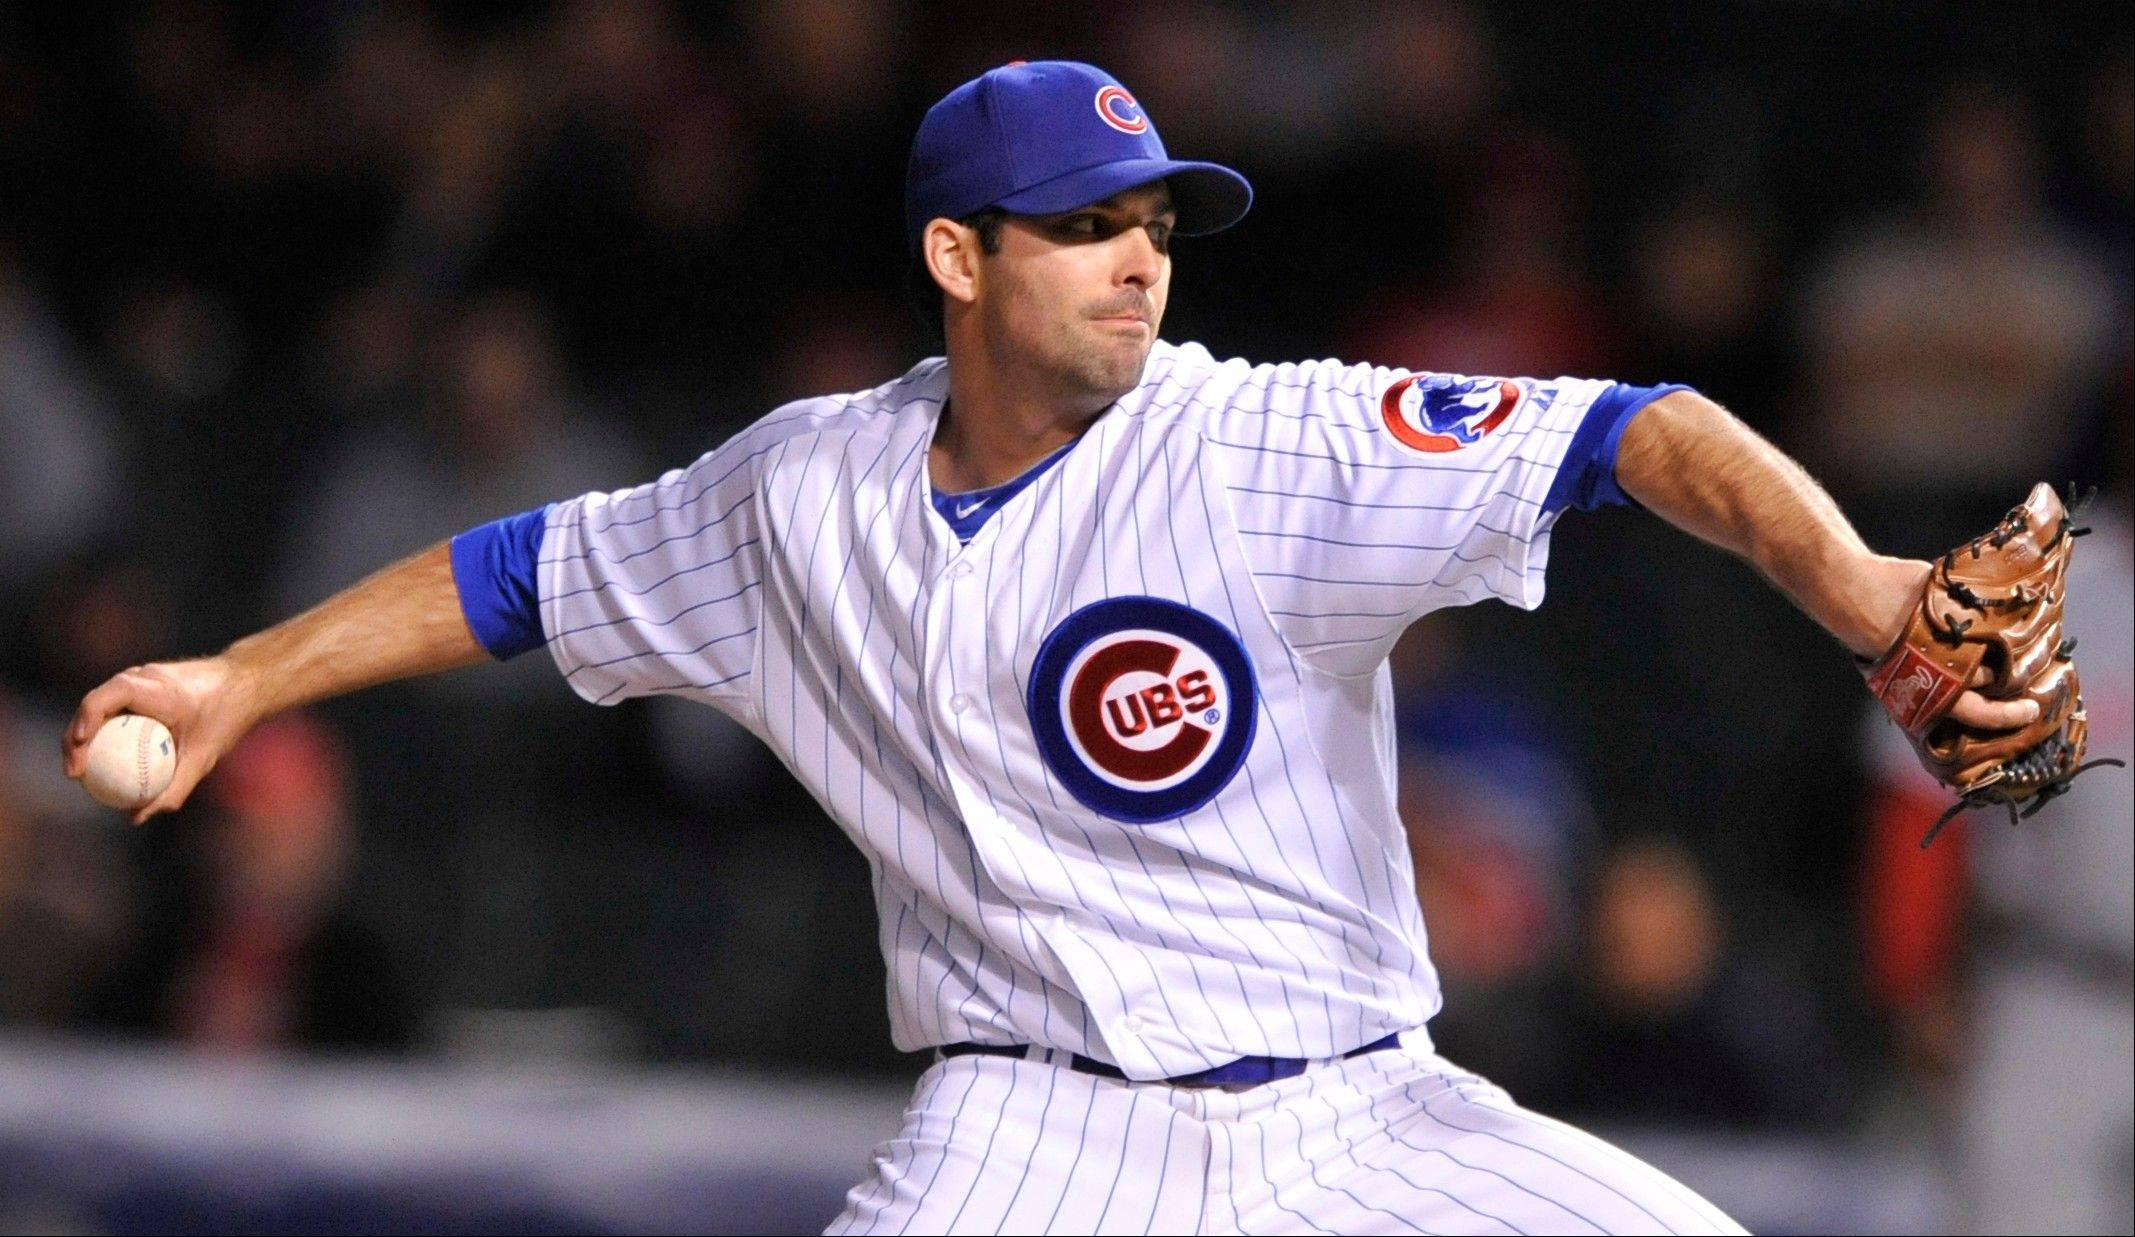 Cubs starter Justin Germano delivers a pitch Tuesday during the first inning against the Cincinnati Reds at Wrigley Field.